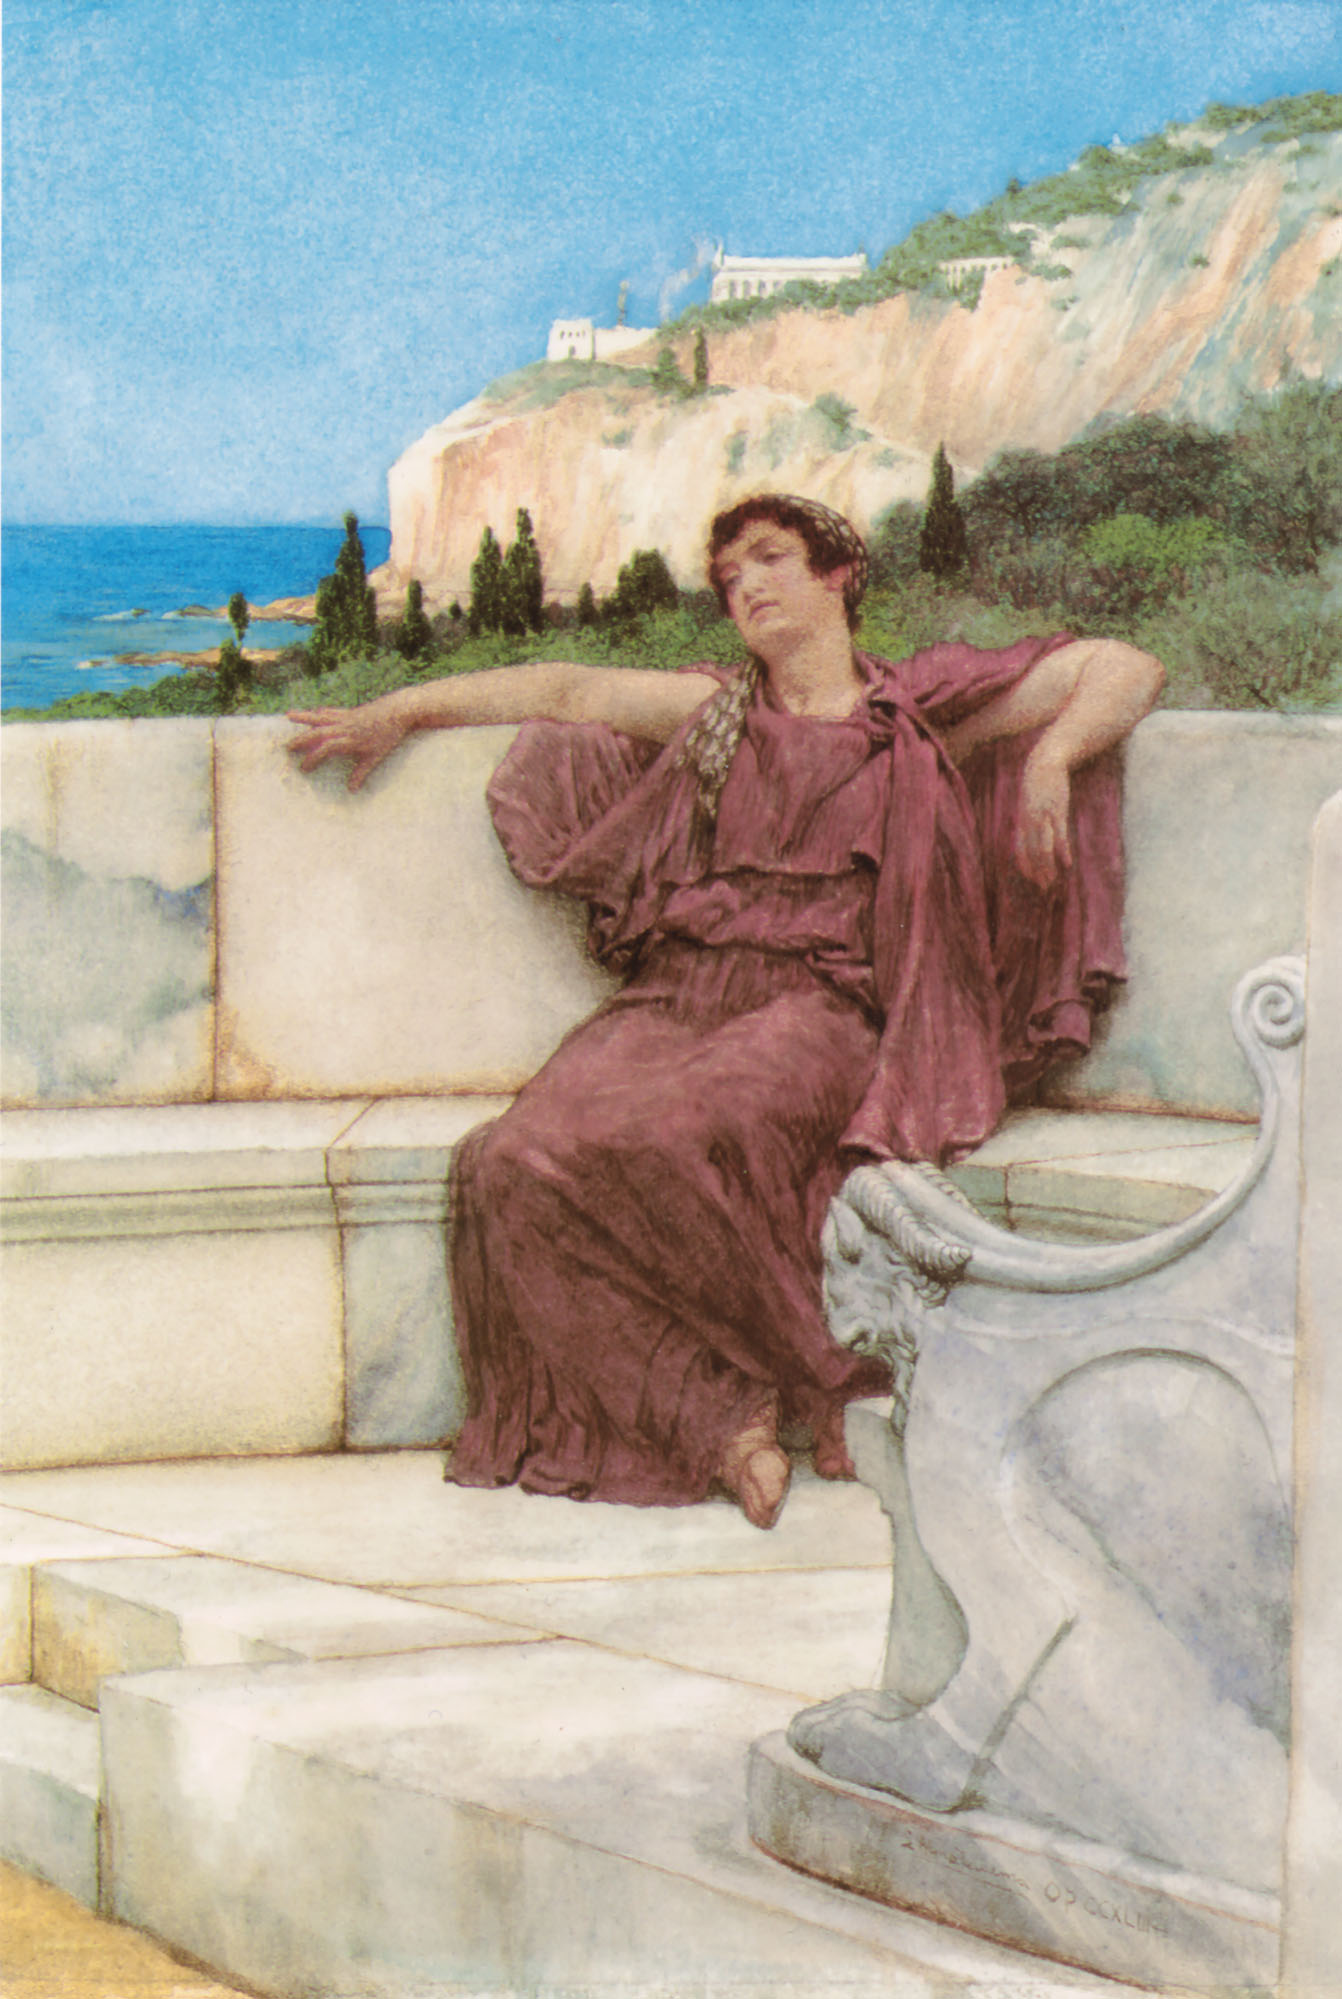 SIR LAWRENCE ALMA TADEMA — A Female Figure Resting Dolce Far Niente, 1882.